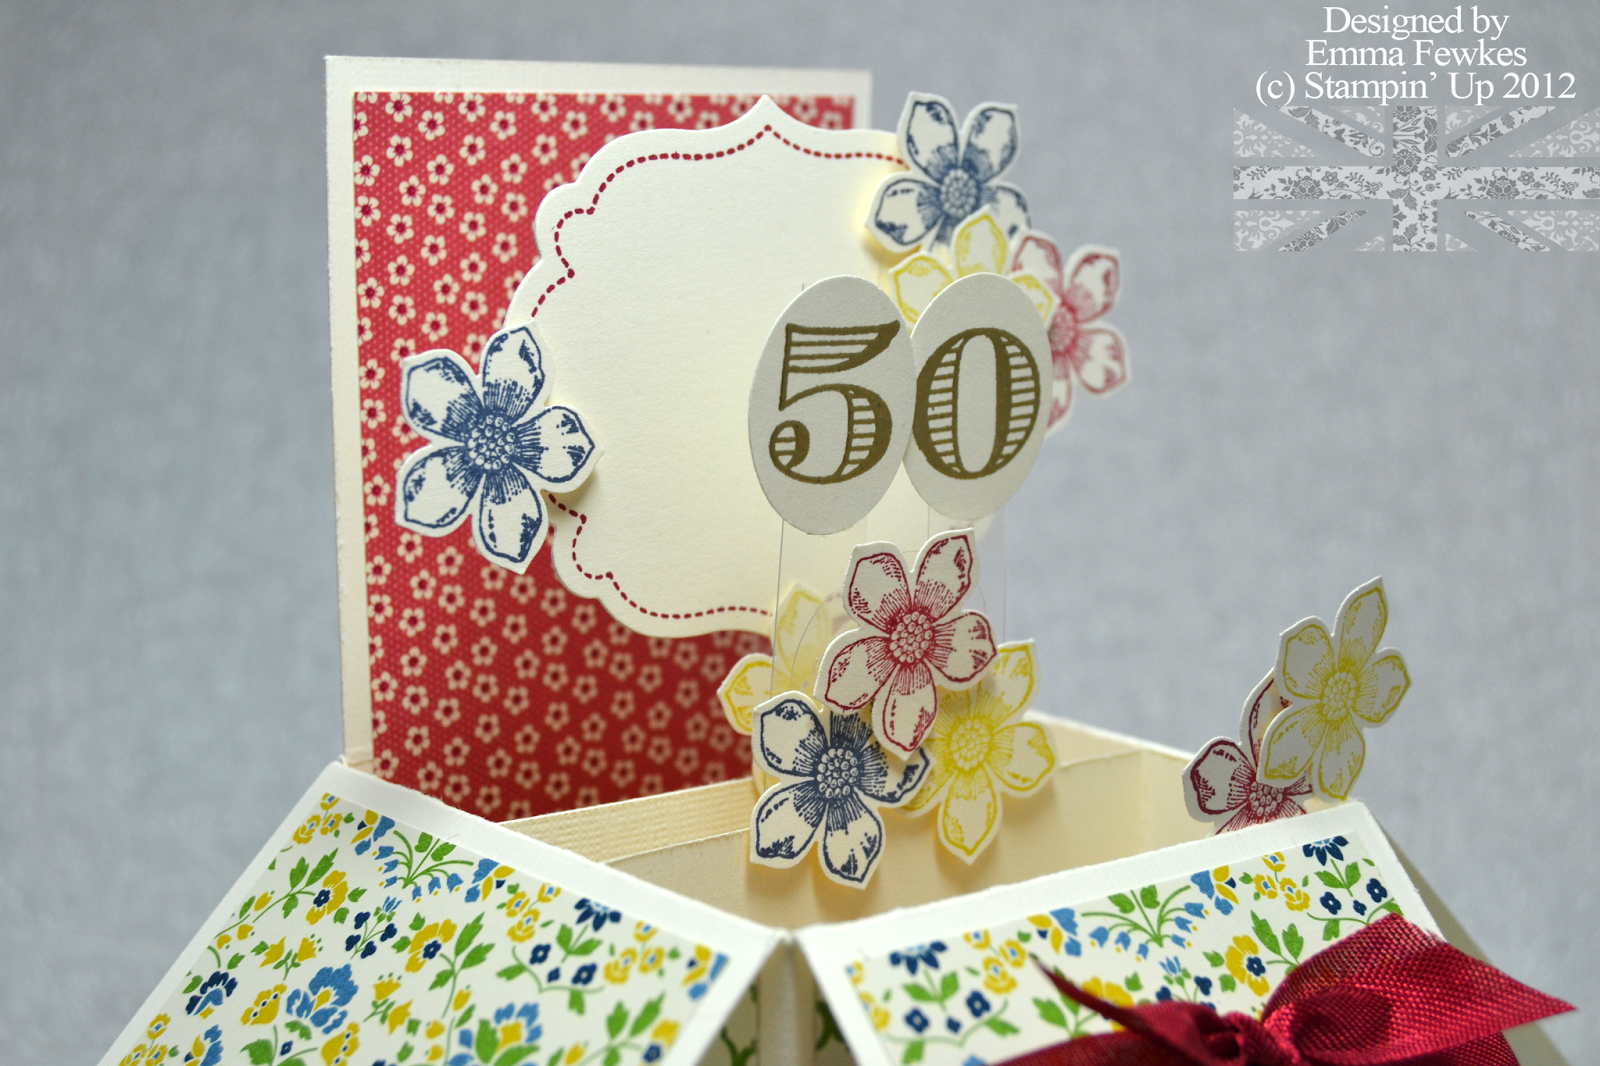 Lady the Stamp 50th Birthday Pop Up Card – Sister 50th Birthday Cards